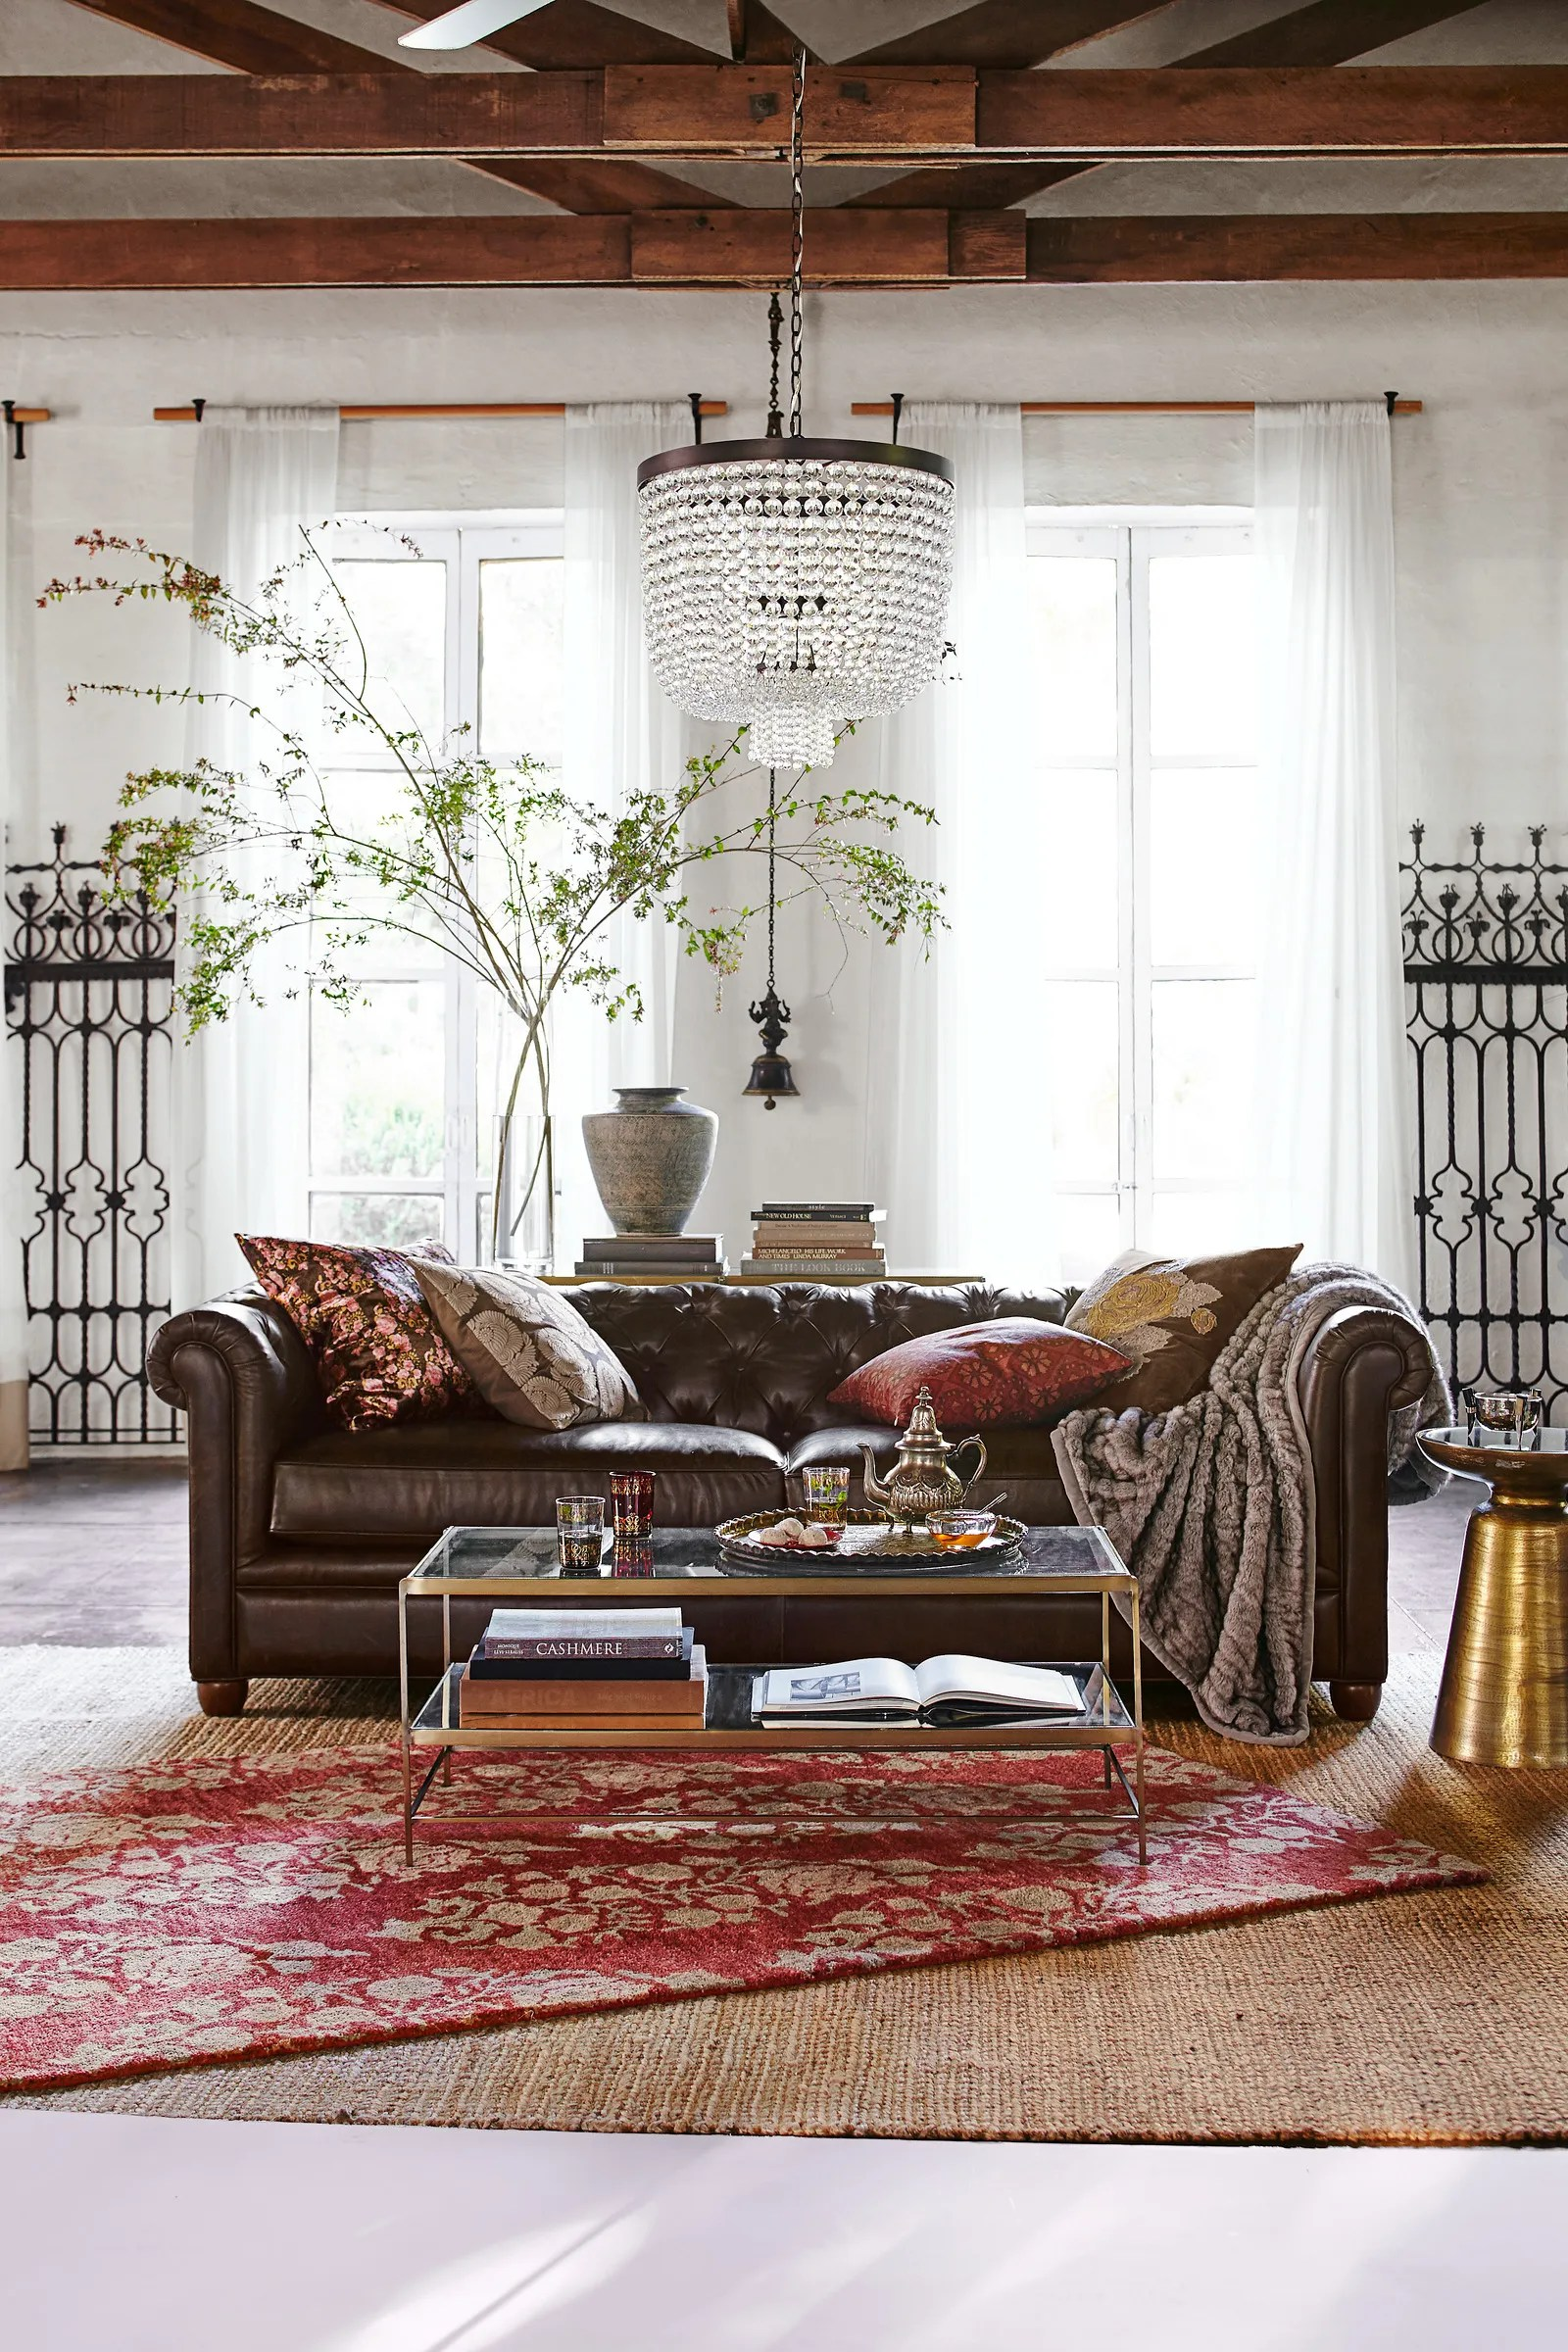 Add Jewel Tones To Your Home With Pottery Barn S